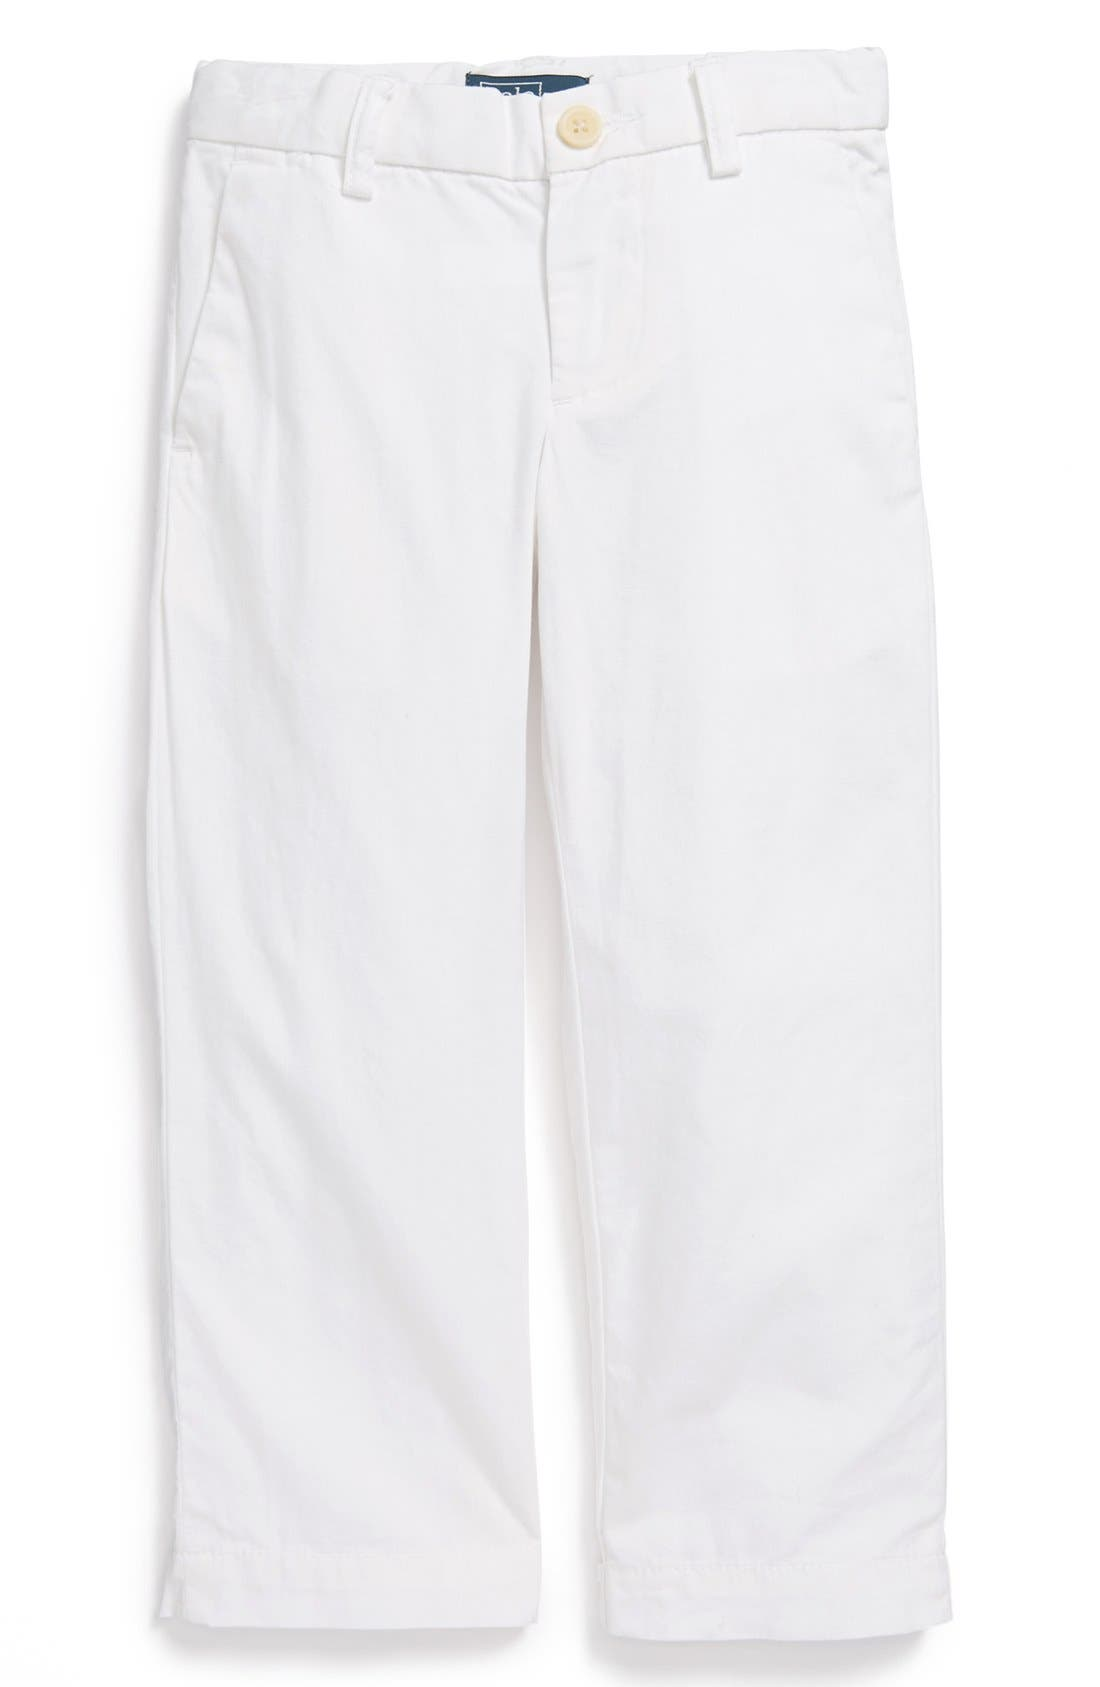 Alternate Image 1 Selected - Ralph Lauren Straight Leg Pants (Toddler Boys)